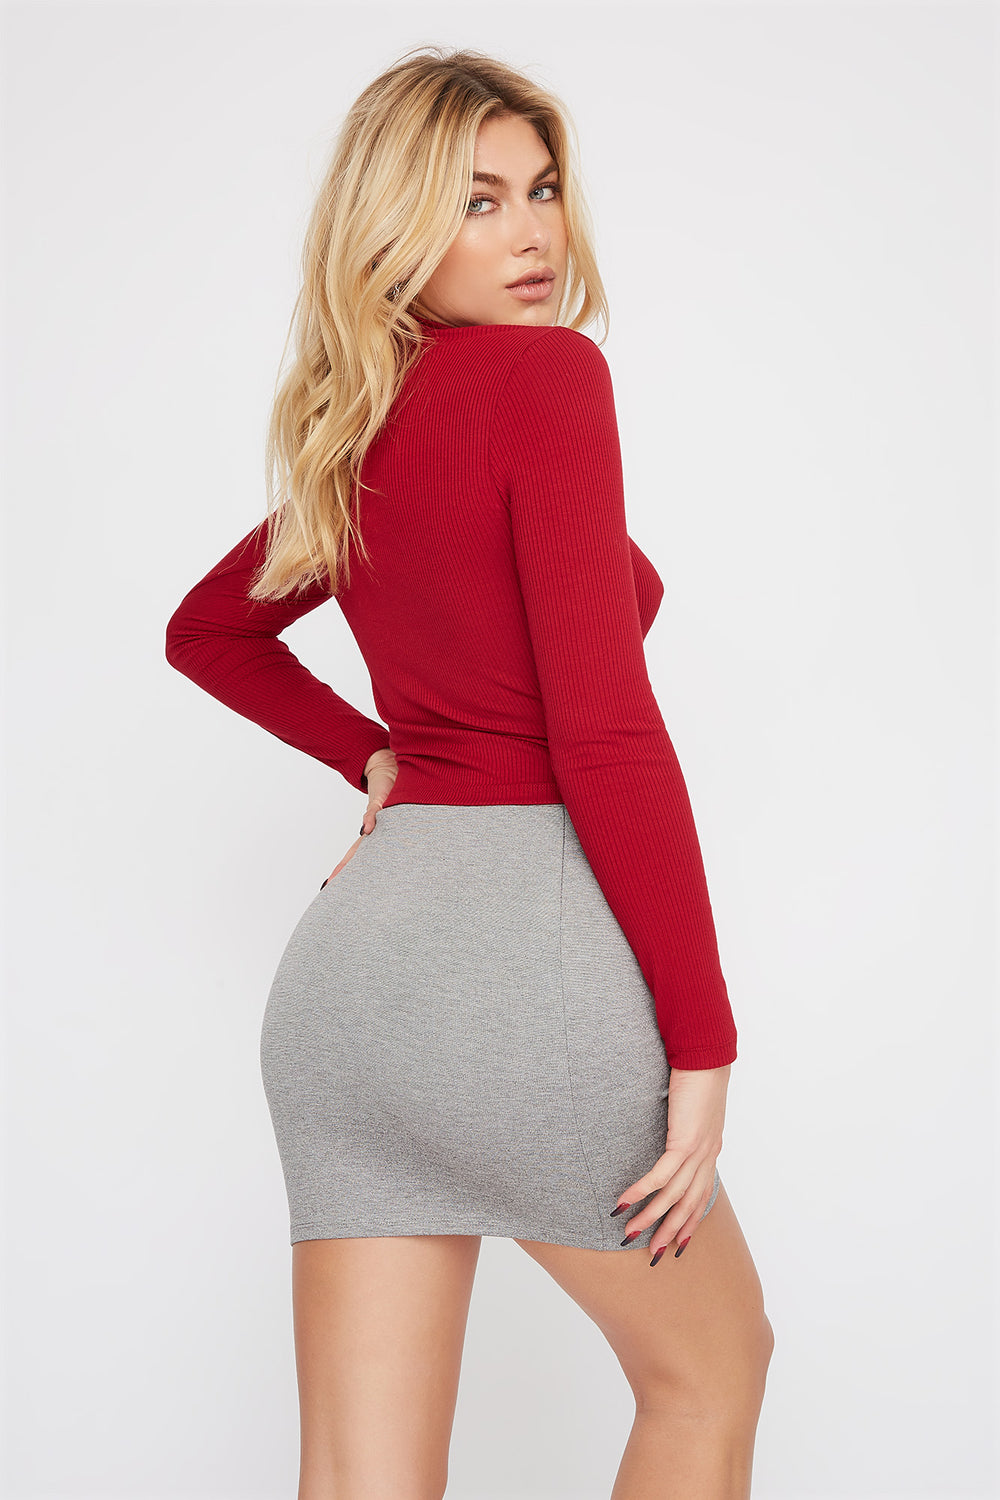 Bandage Mini Skirt Heather Grey